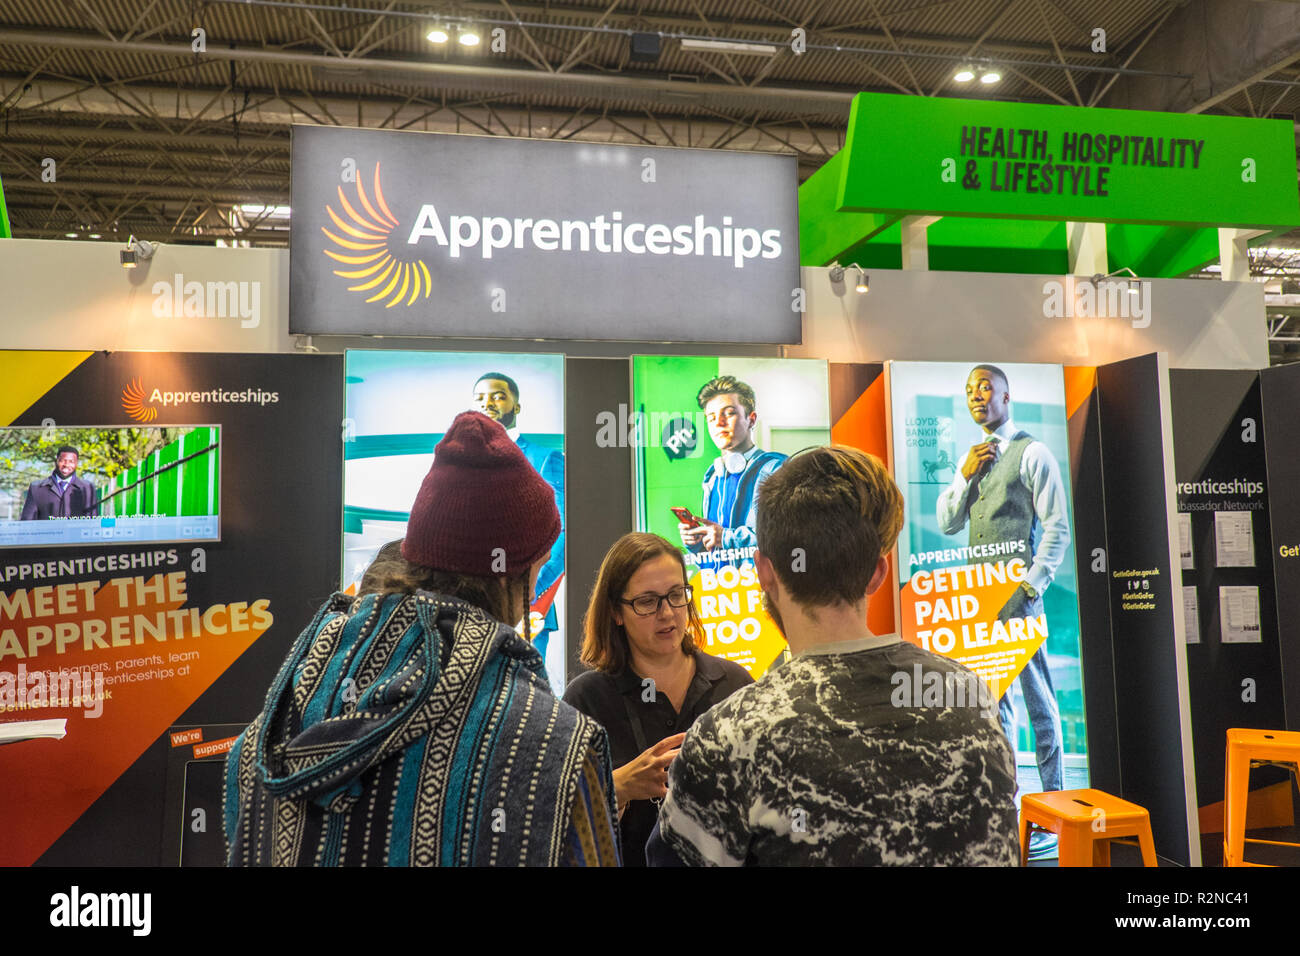 Apprenticeships And Job Stock Photos Apprenticeships And Job Stock Images Alamy